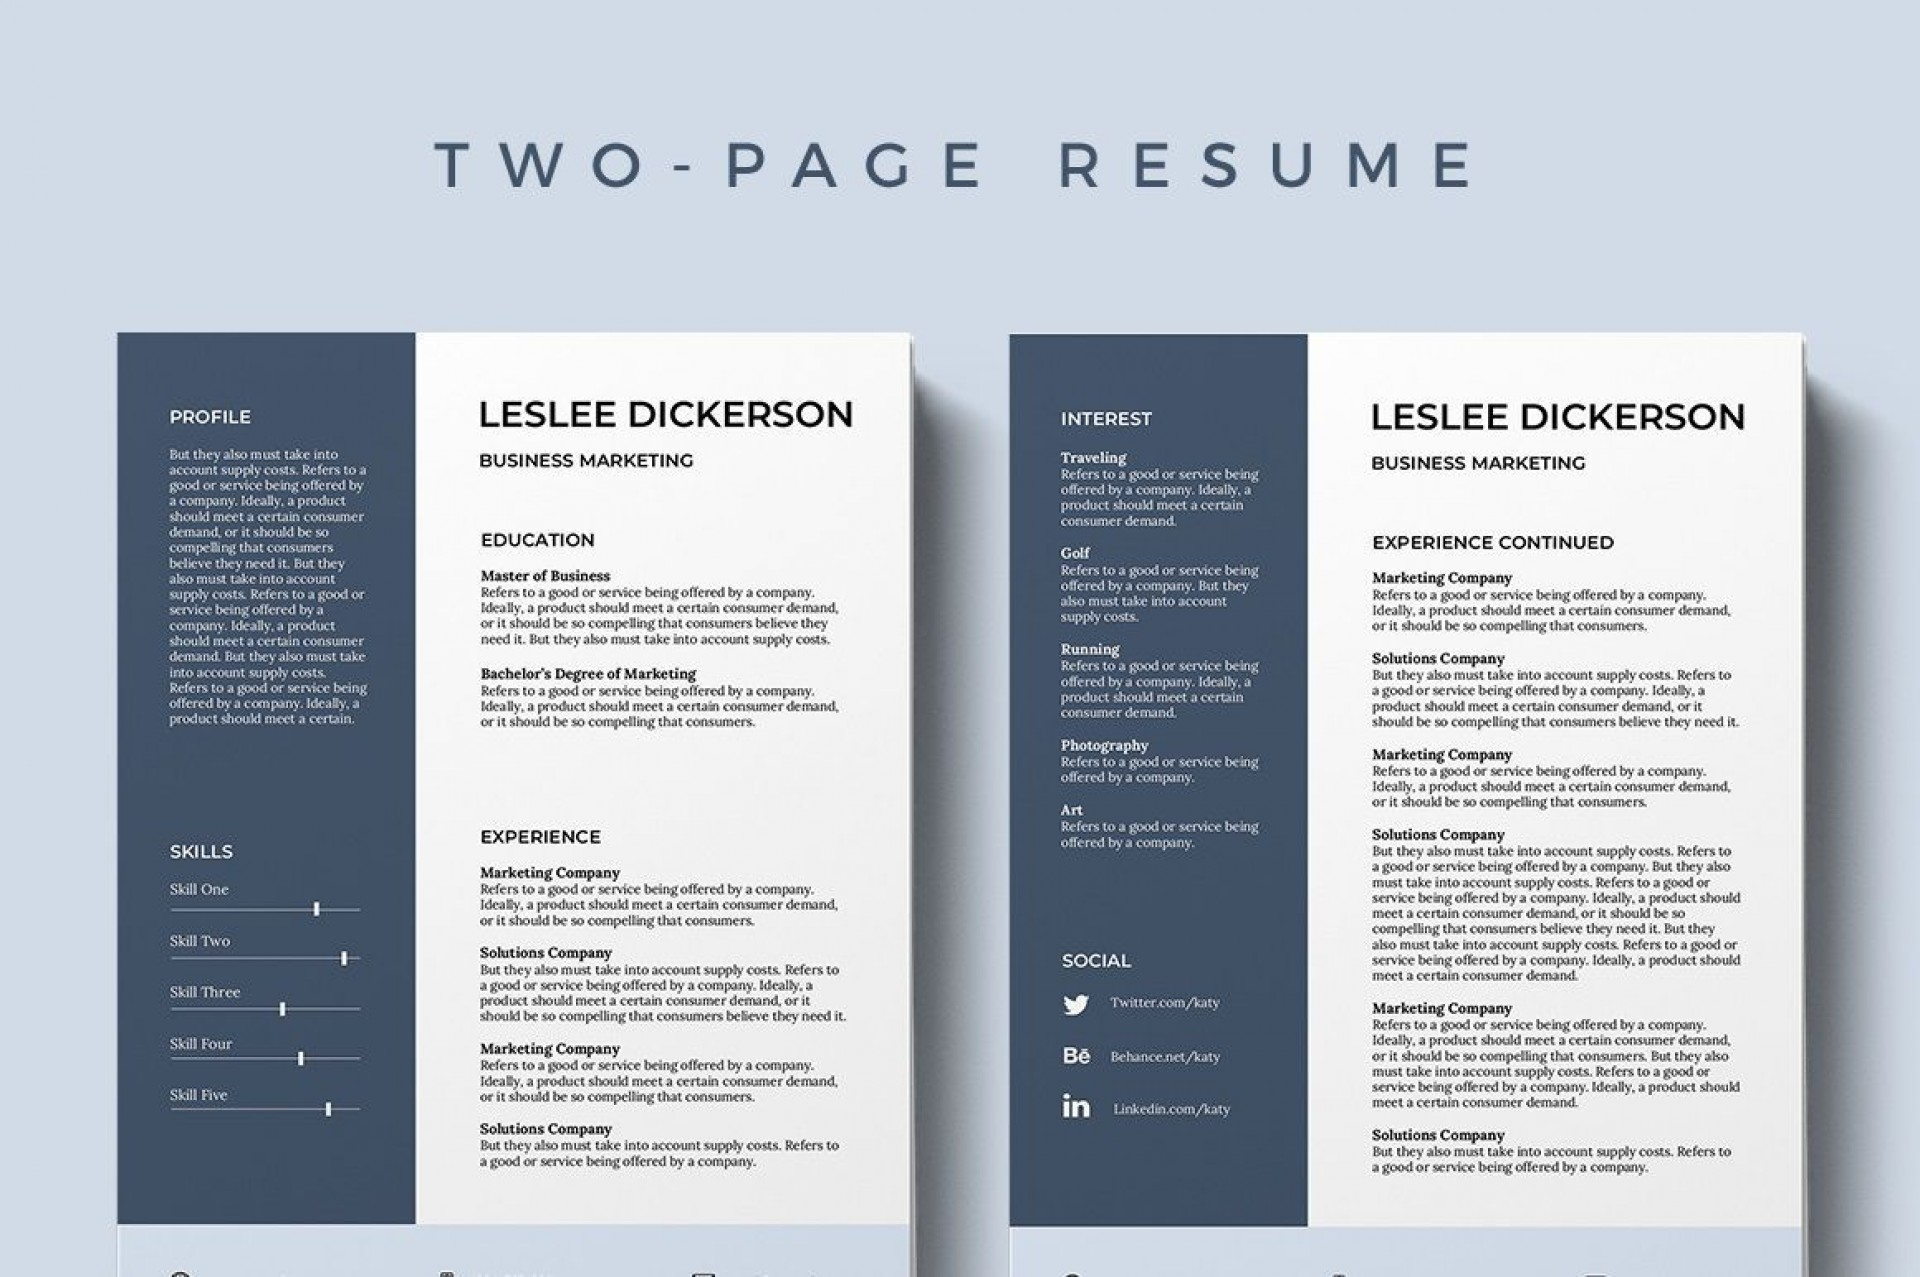 002 Awful Professional Resume Template 2018 Free Download Image 1920